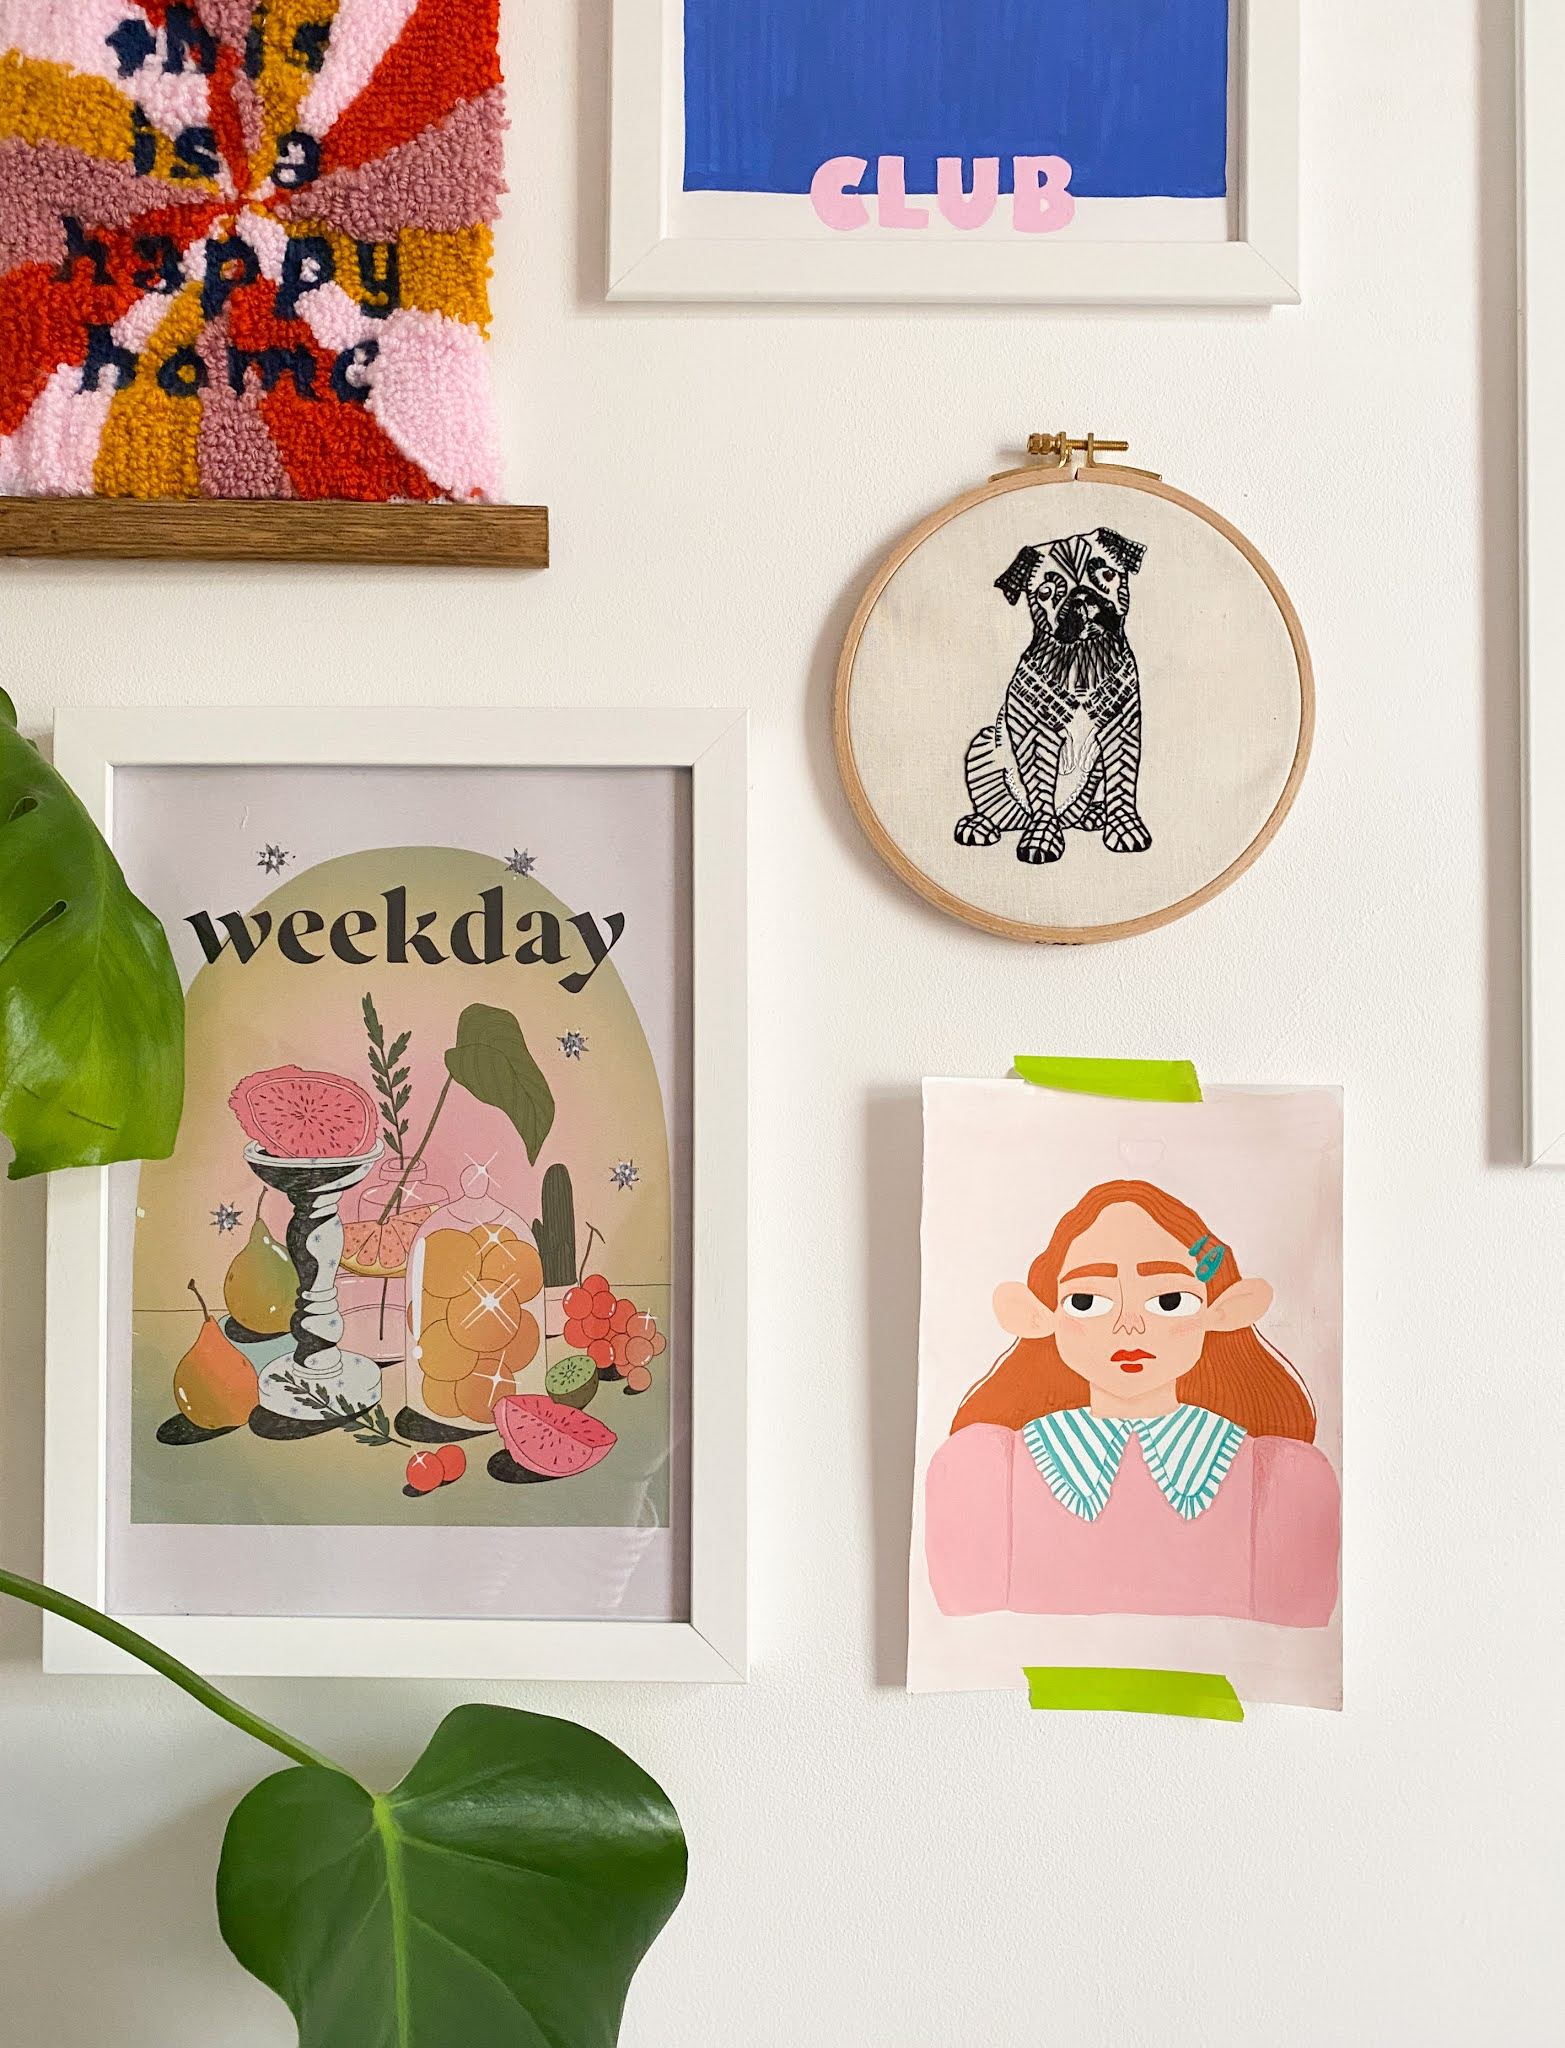 """gallery wall of prints including drawing of red headed girl with large collar, """"weekday"""" print with fruits on platter, embroidery hoop of pug and punch needle wall hanging reading """"this is a happy home"""""""